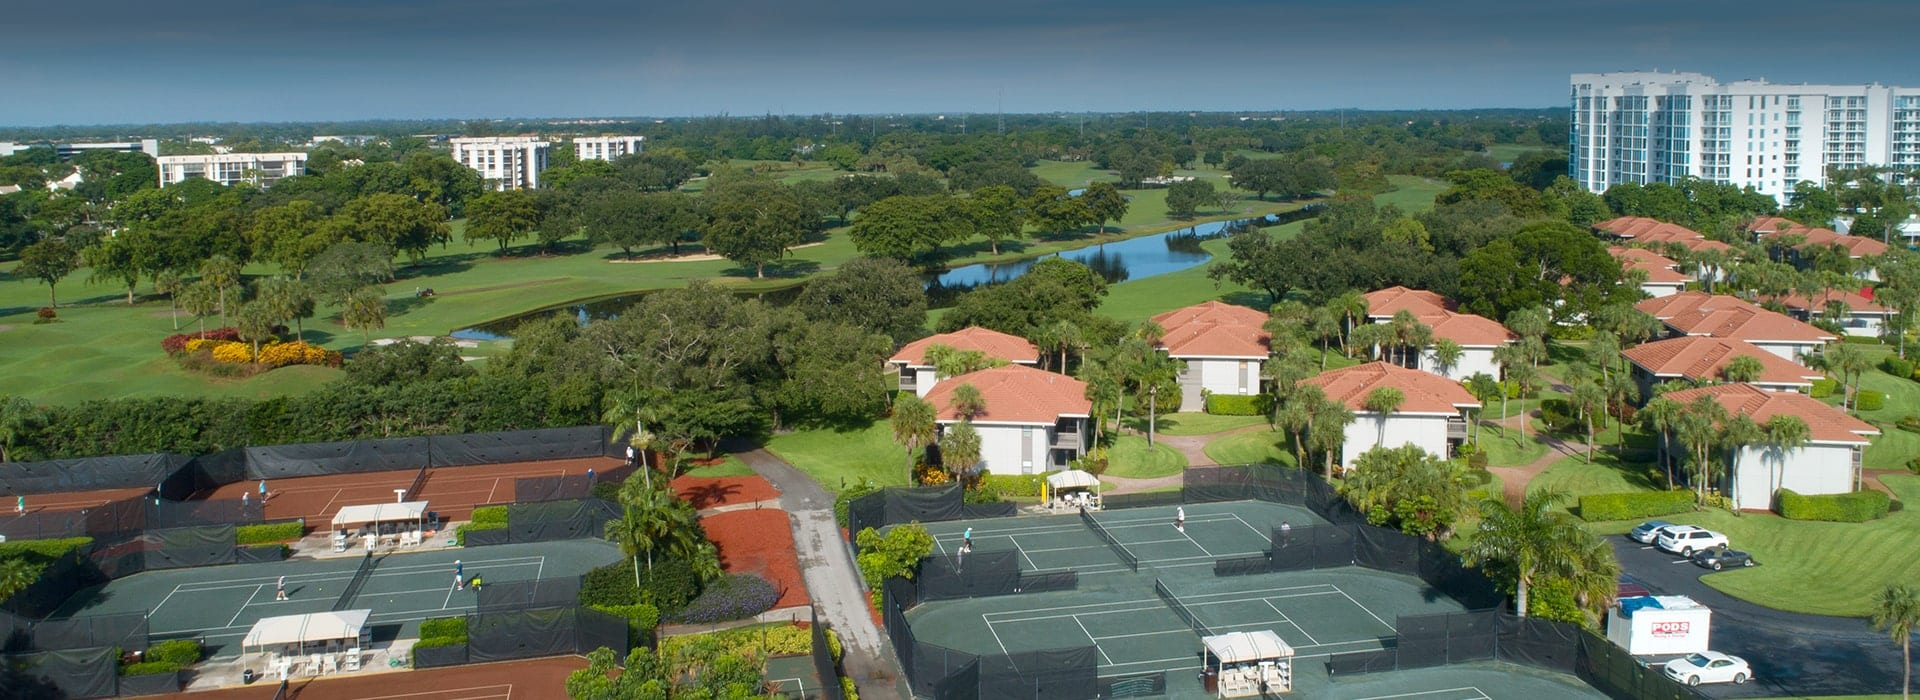 Courtside townhomes at Boca West beside the tennis courts